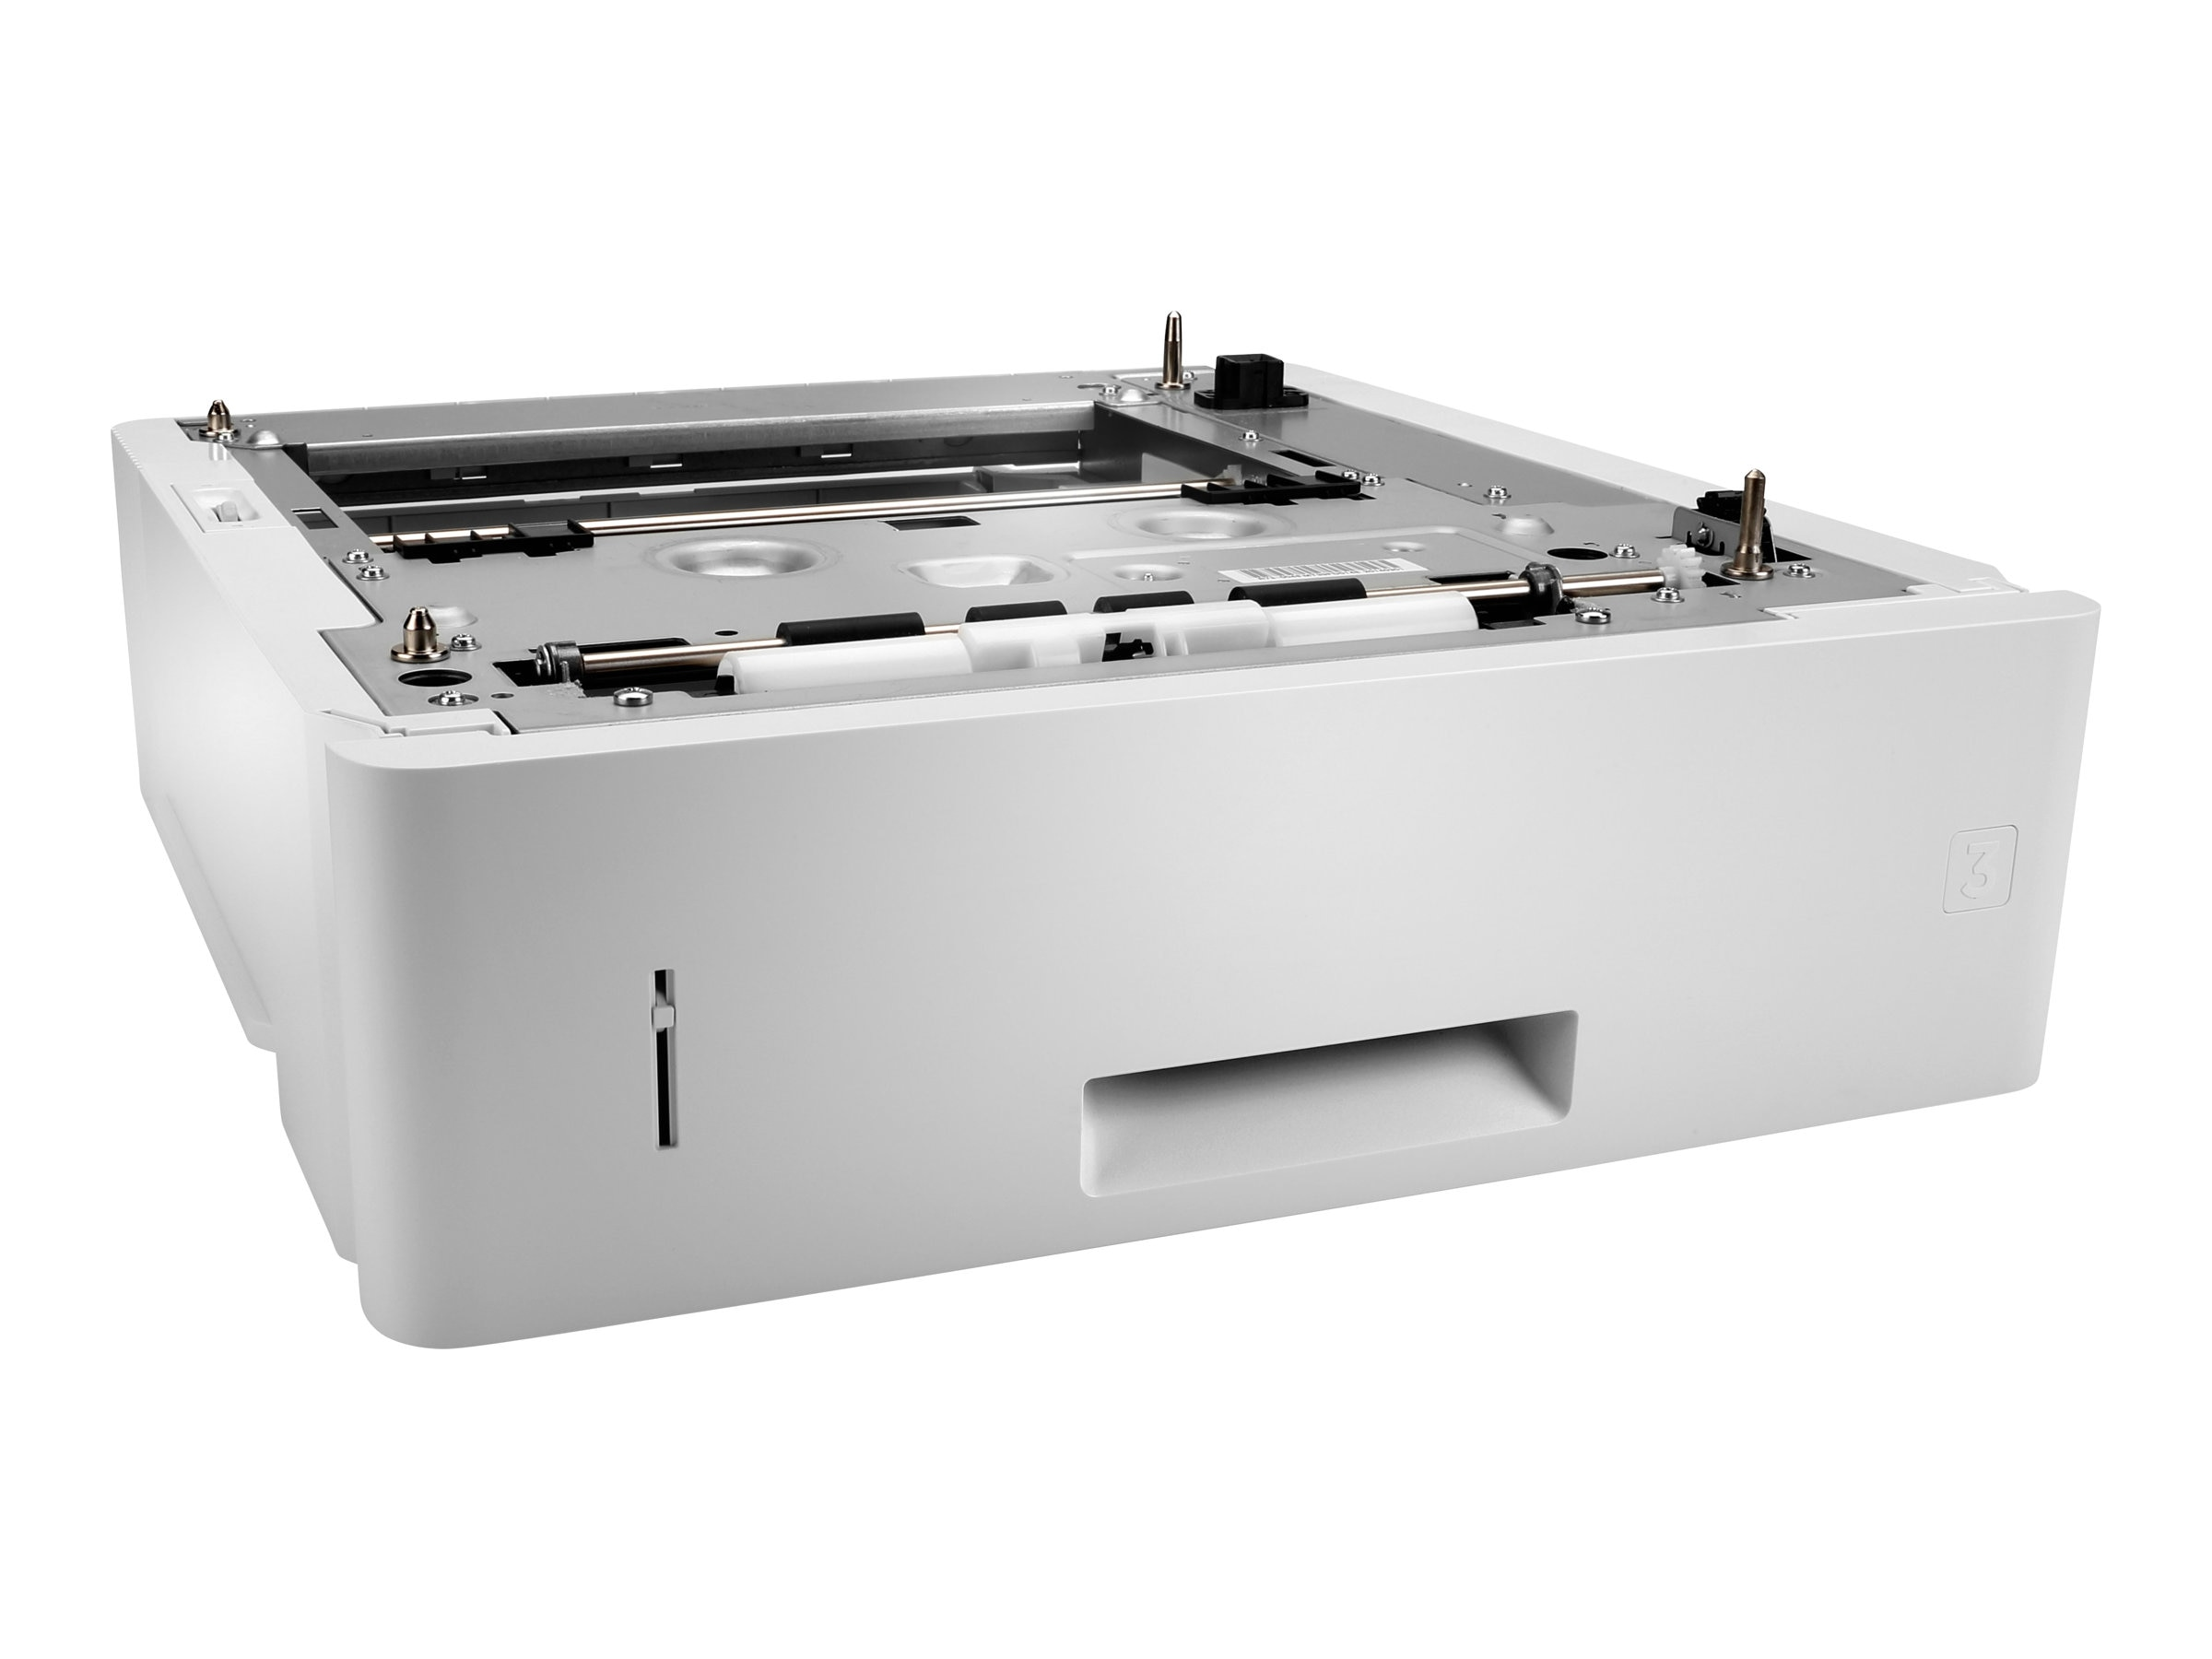 HP LaserJet 500-Sheet Input Tray Feeder for HP LaserJet M604, M605 & M606 Series, F2G68A, 19854356, Printers - Input Trays/Feeders